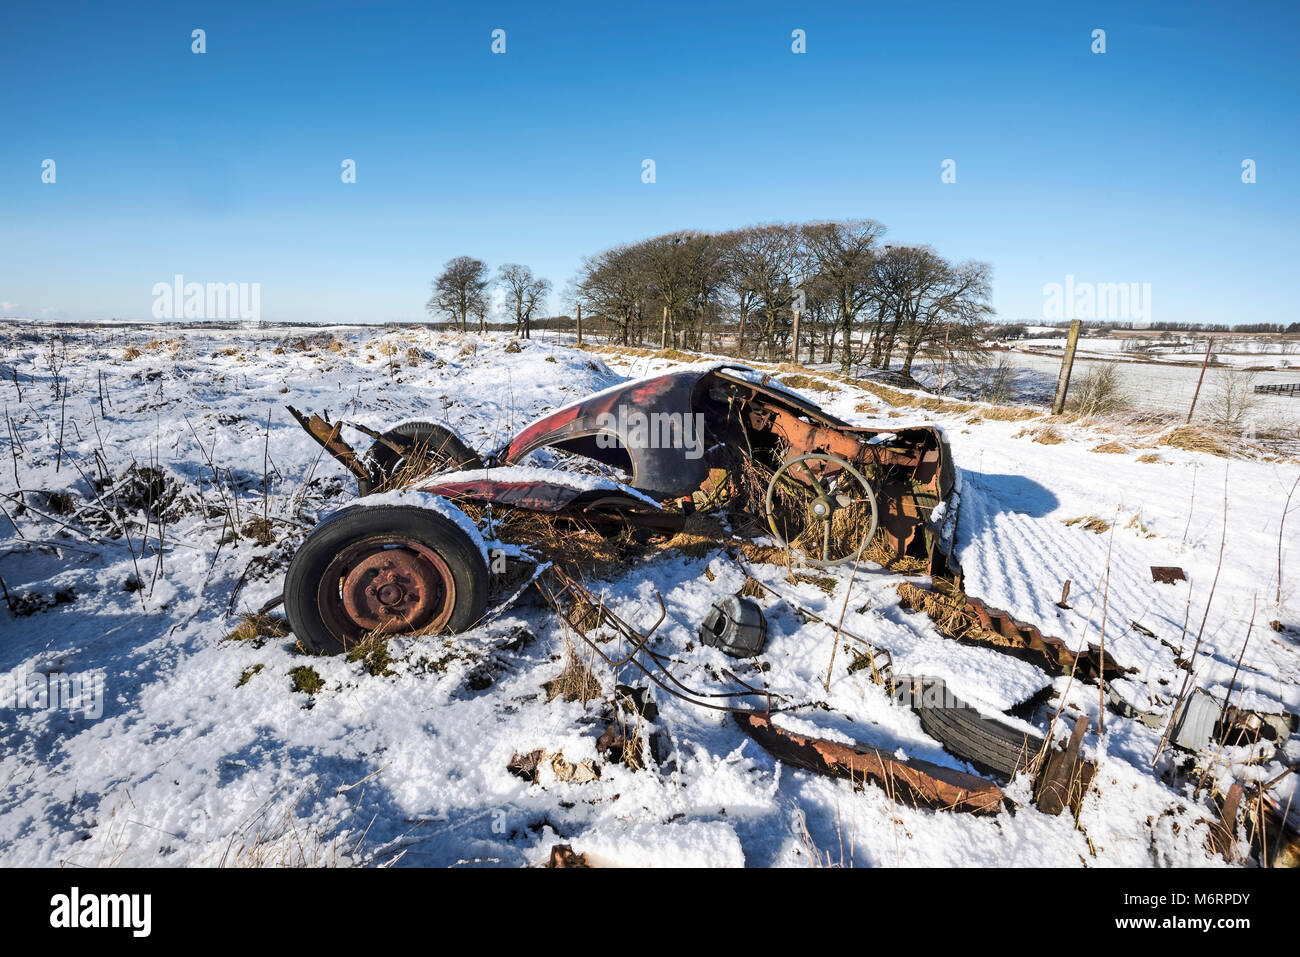 Abandoned car wreckage in rural central Scotland. - Stock Image